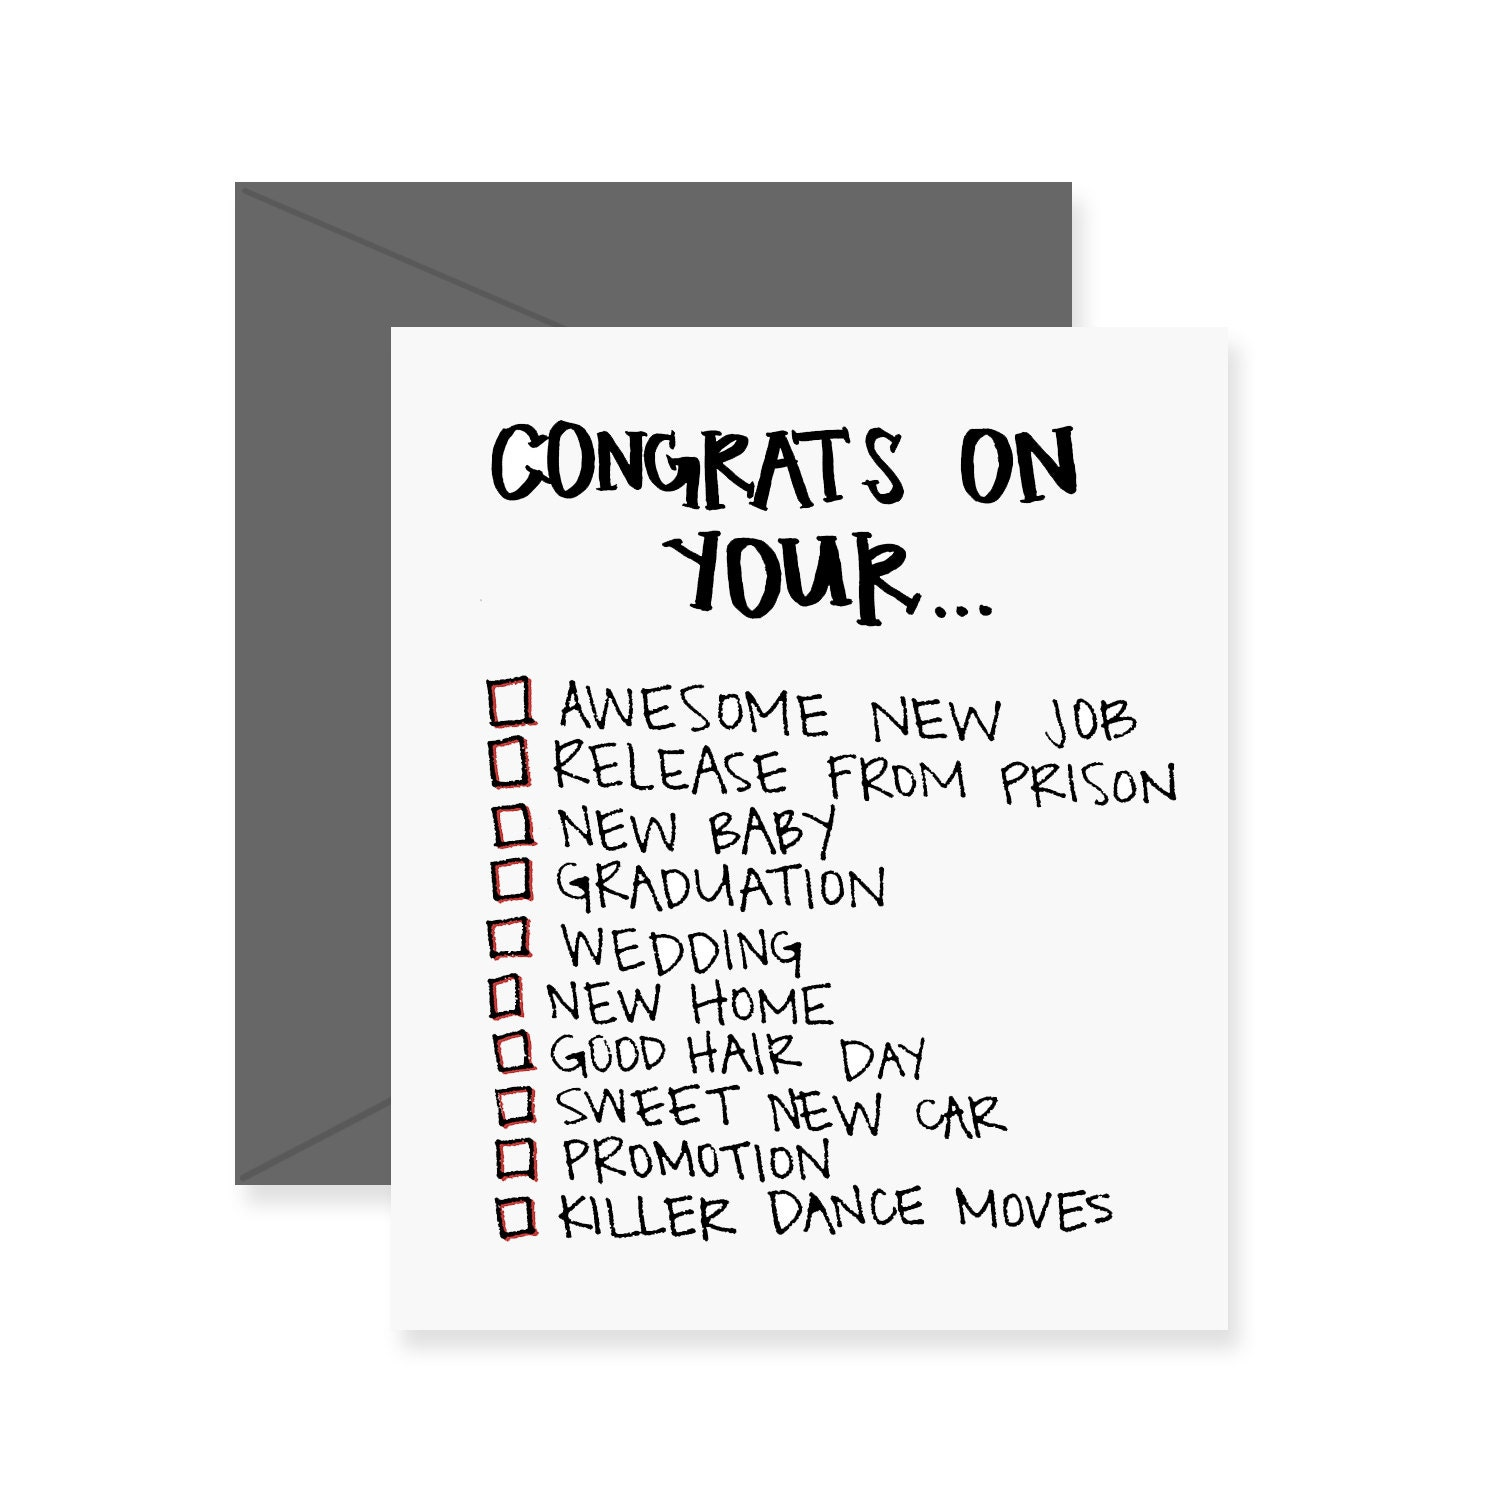 Congrats On Your New Job Quotes: Congrats On Your... Checklist Greeting Card Congrats Card